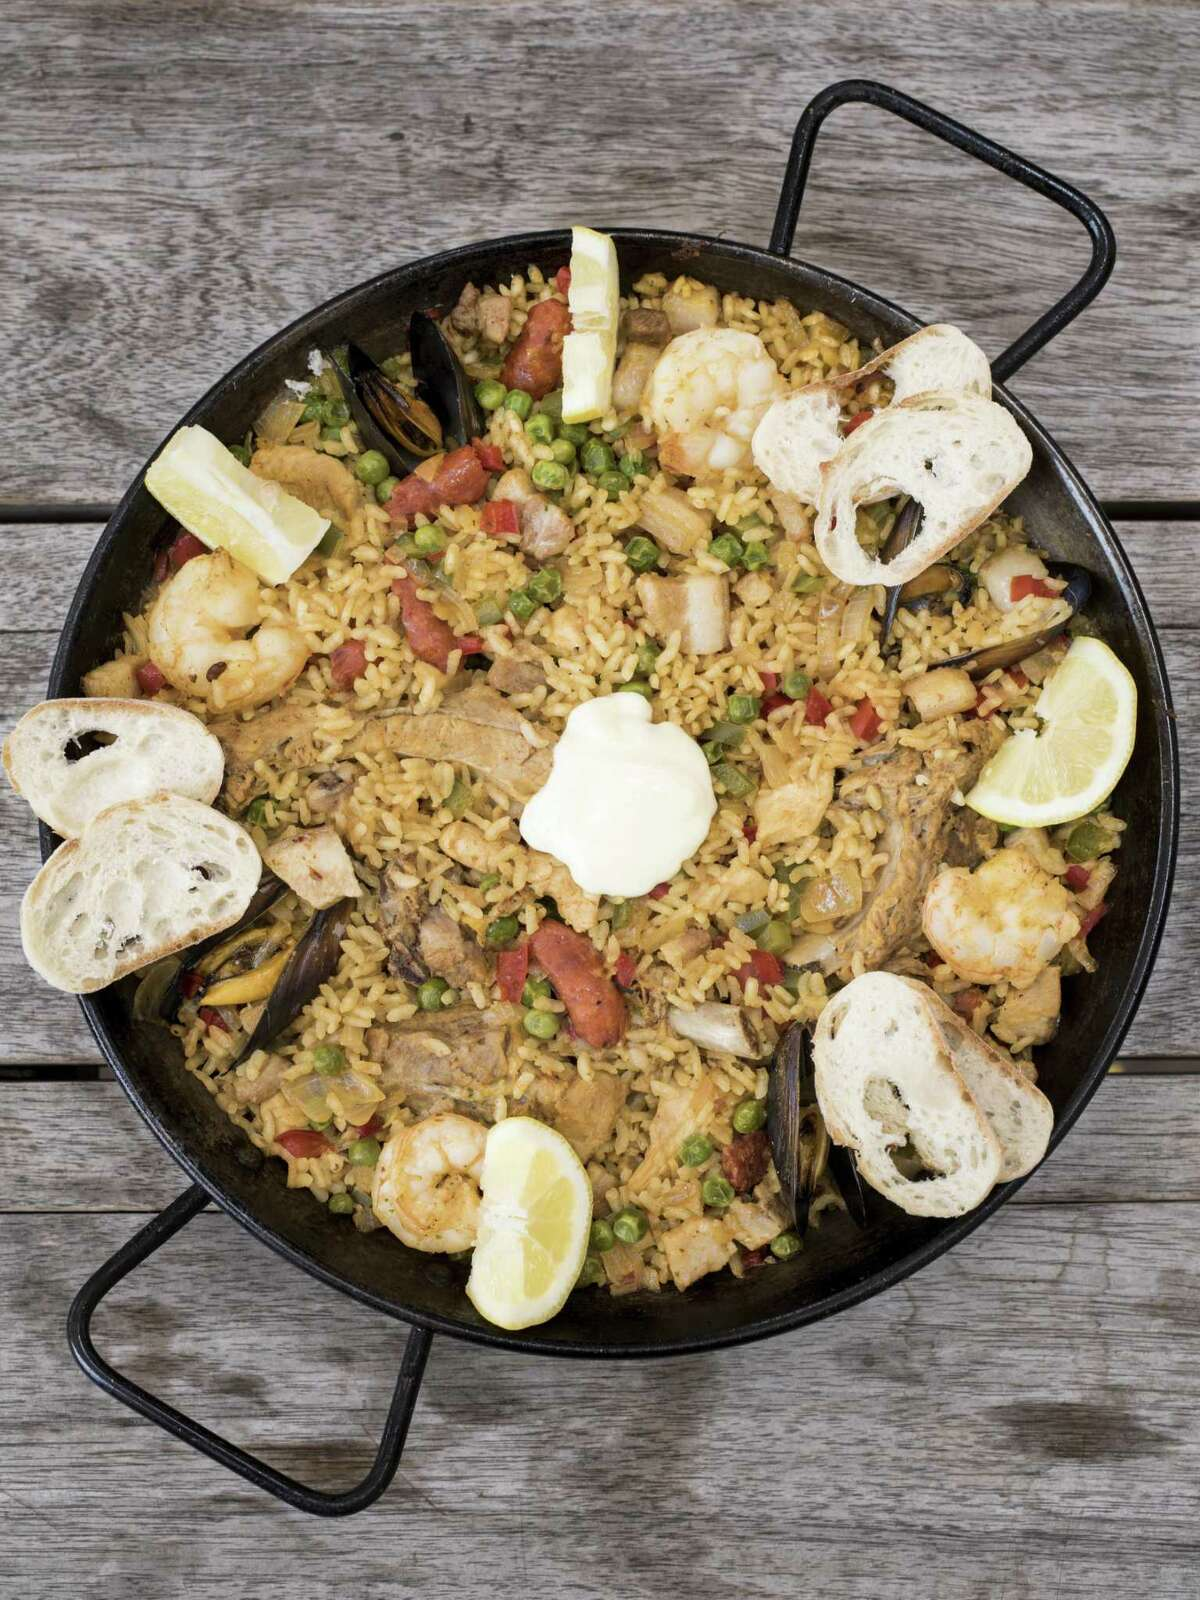 Toro Paella is made with pork belly chorizo, pork ribs, chicken, muscles, shrimp, rice, saffron water, parsley sauce, red and green peppers, onions, green peas and olive oil and cooked in a chicken and seafood broth at Toro Kitchen + Bar.